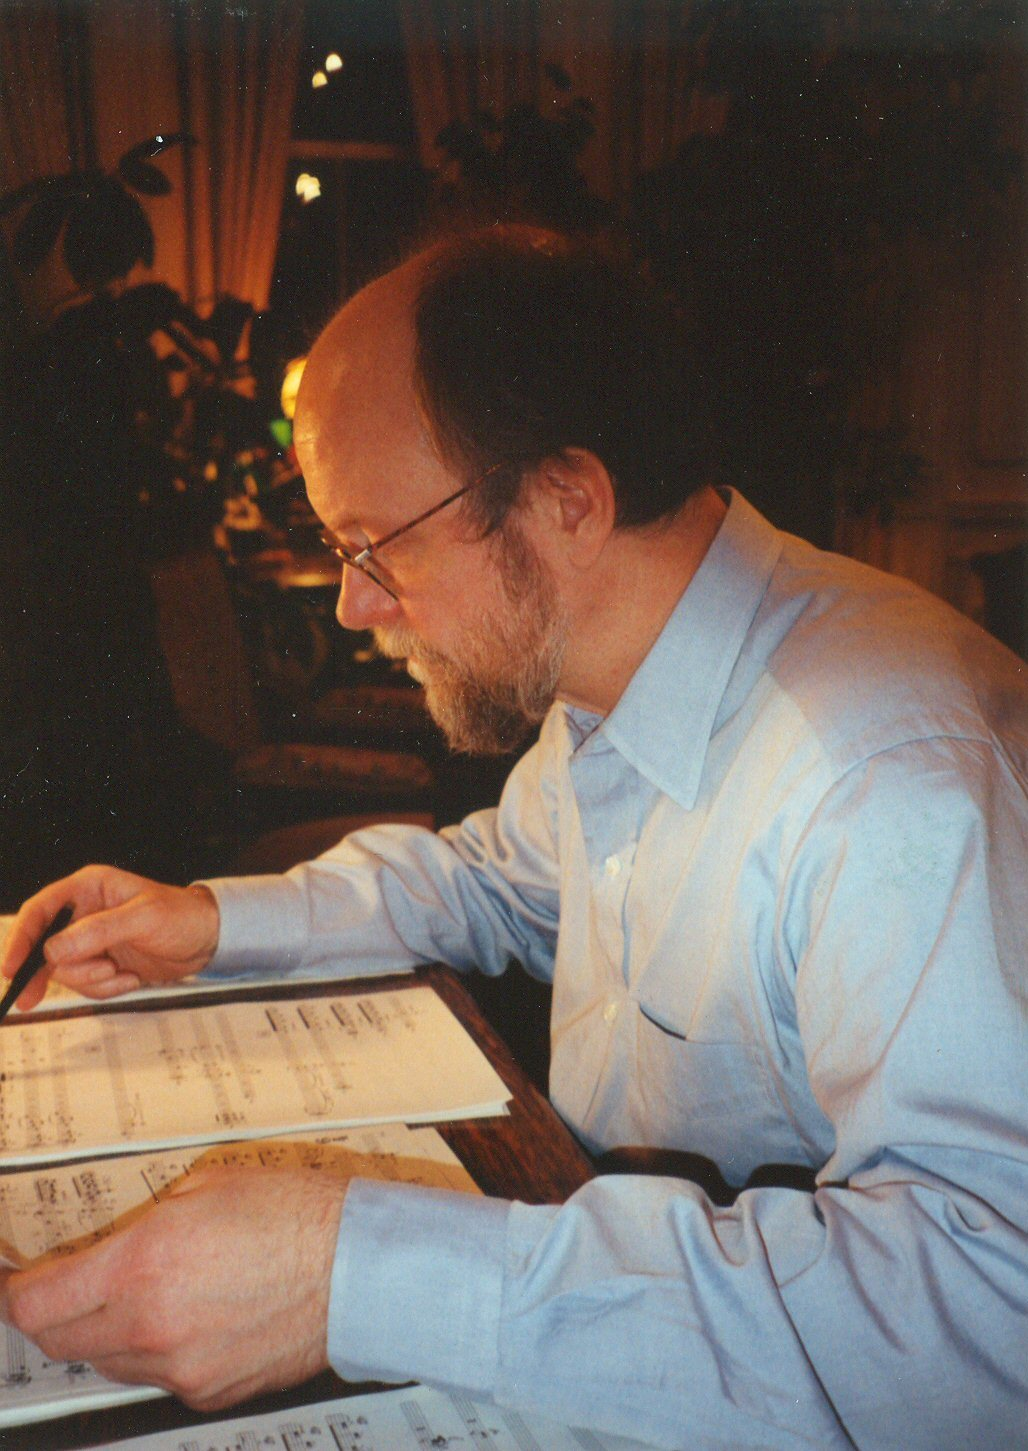 Howard shanet learn to pdf read music